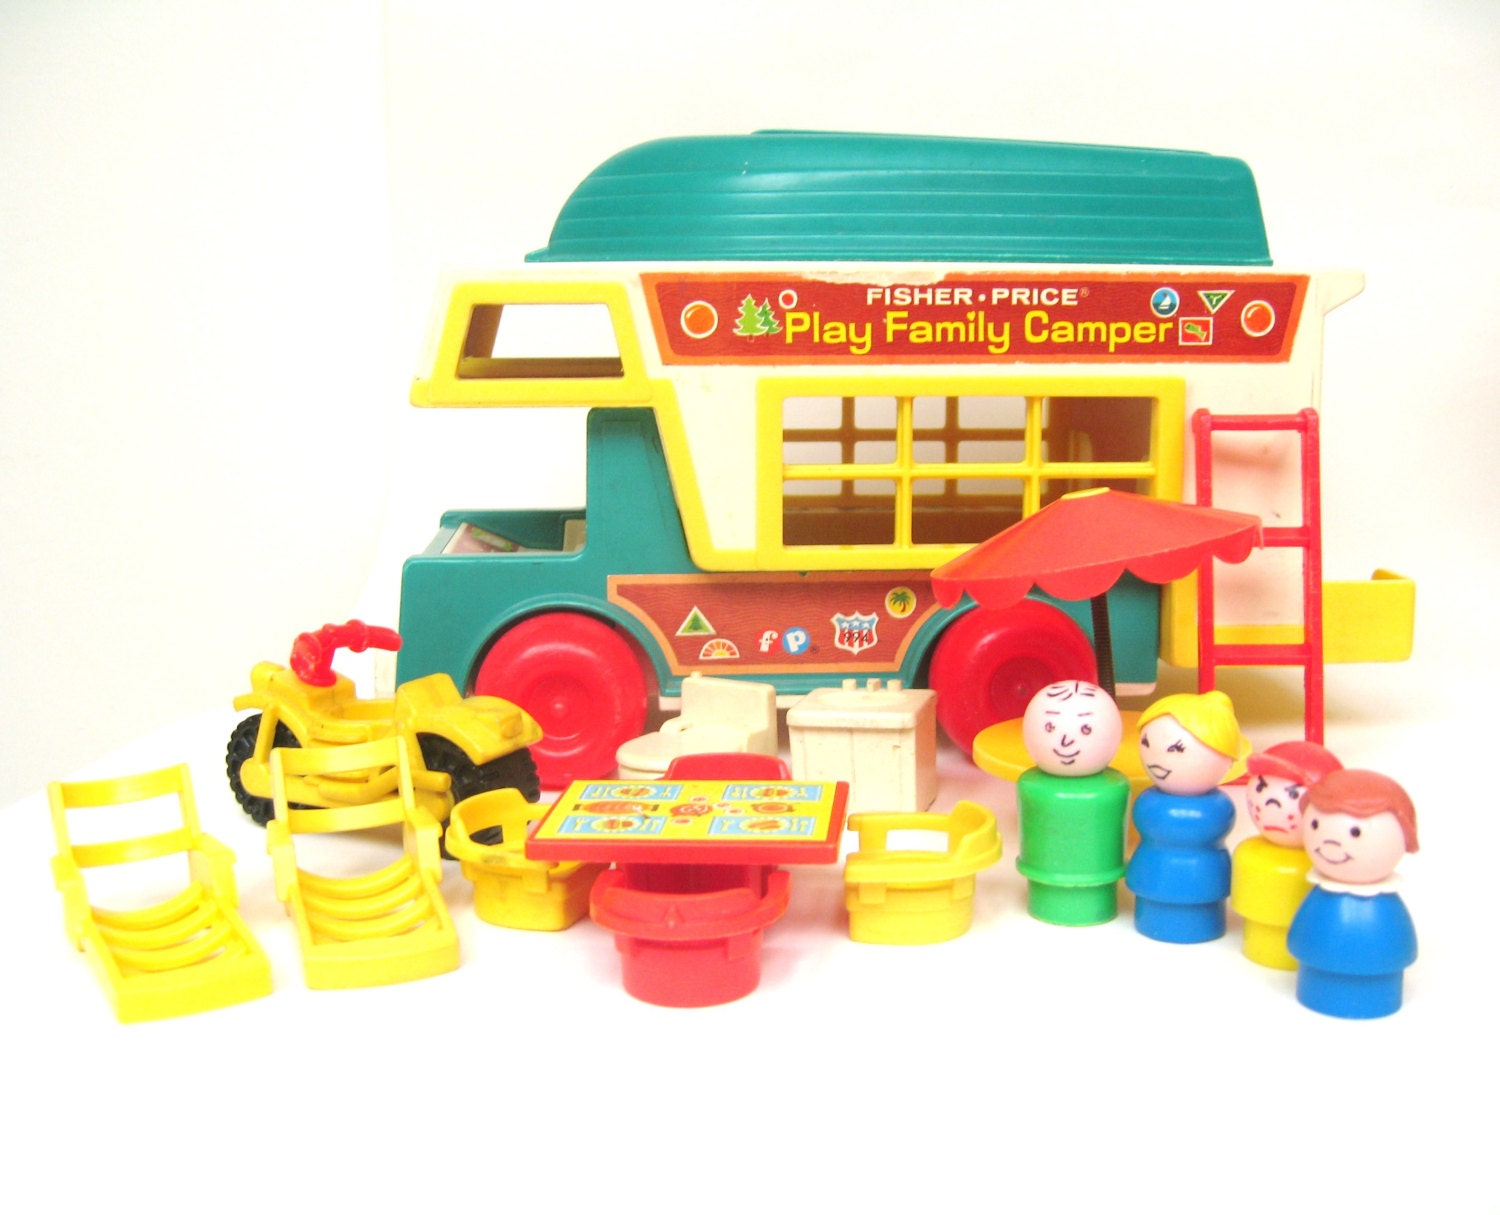 Vintage Fisher Price Camper Set